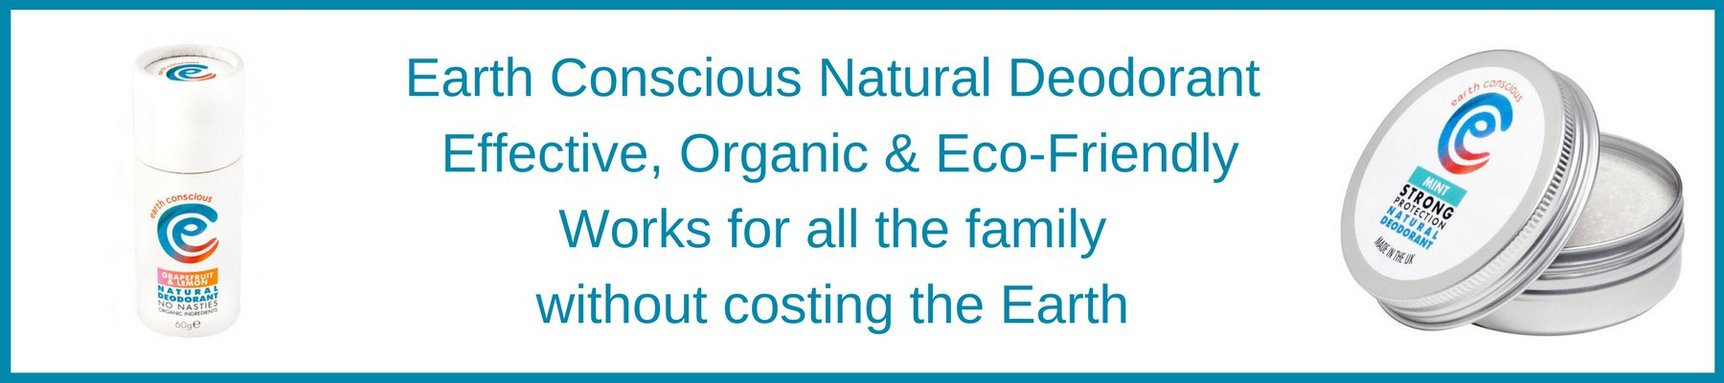 Earth Conscious Natural Deodorant